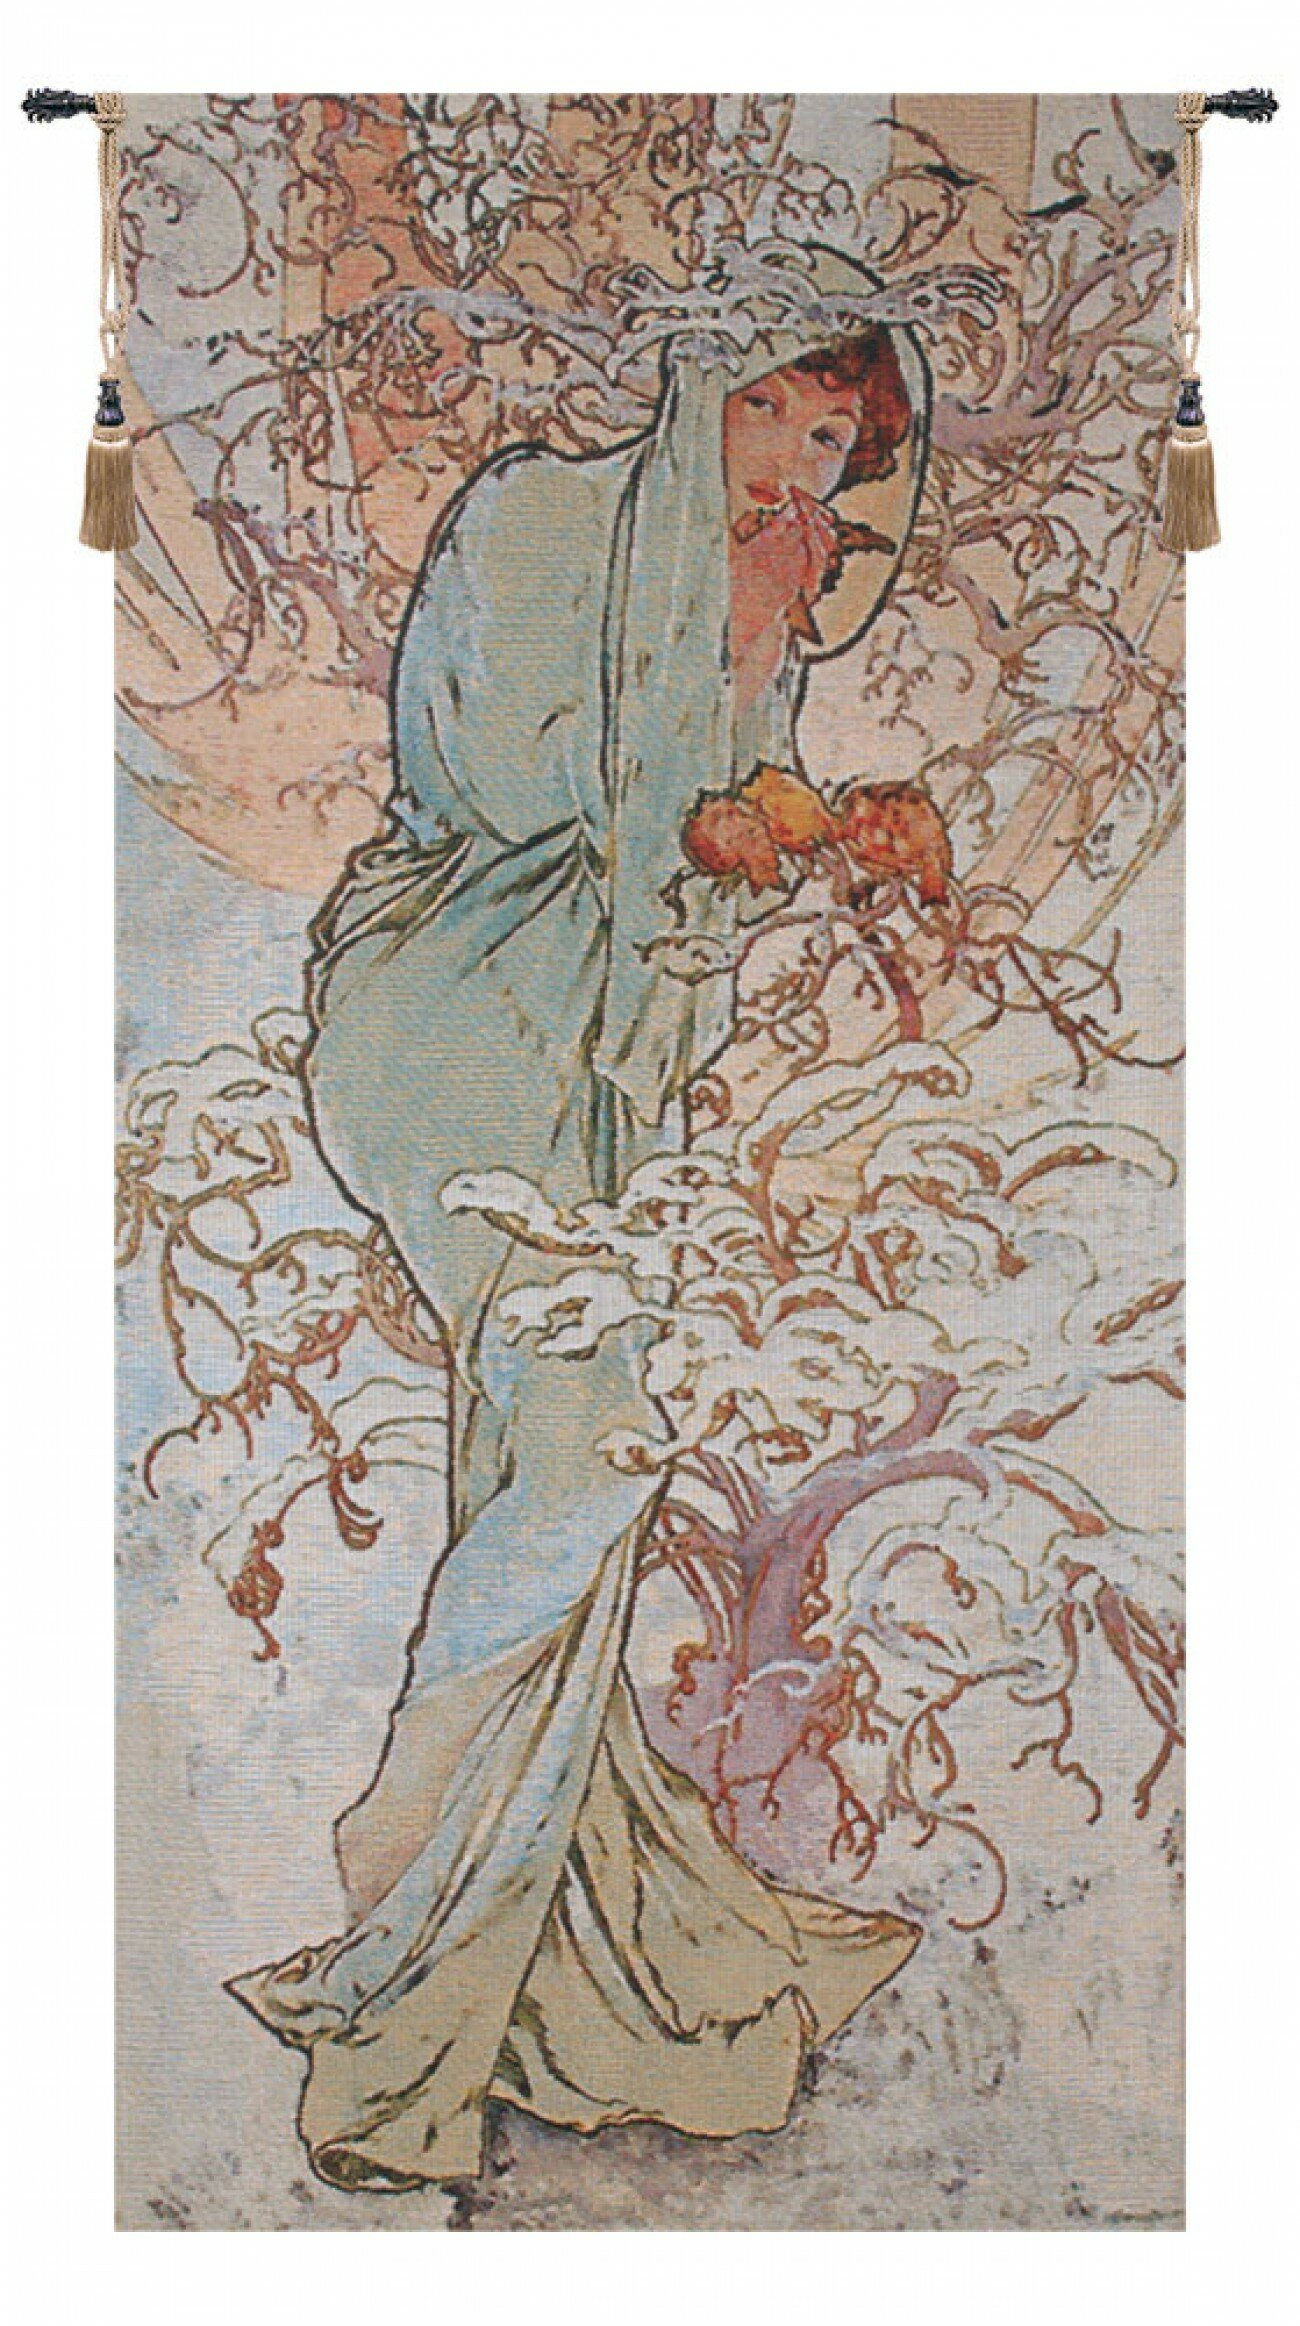 Wintermucha Tapestry Regarding Most Popular Blended Fabric Mucha Spring European Wall Hangings (View 4 of 20)